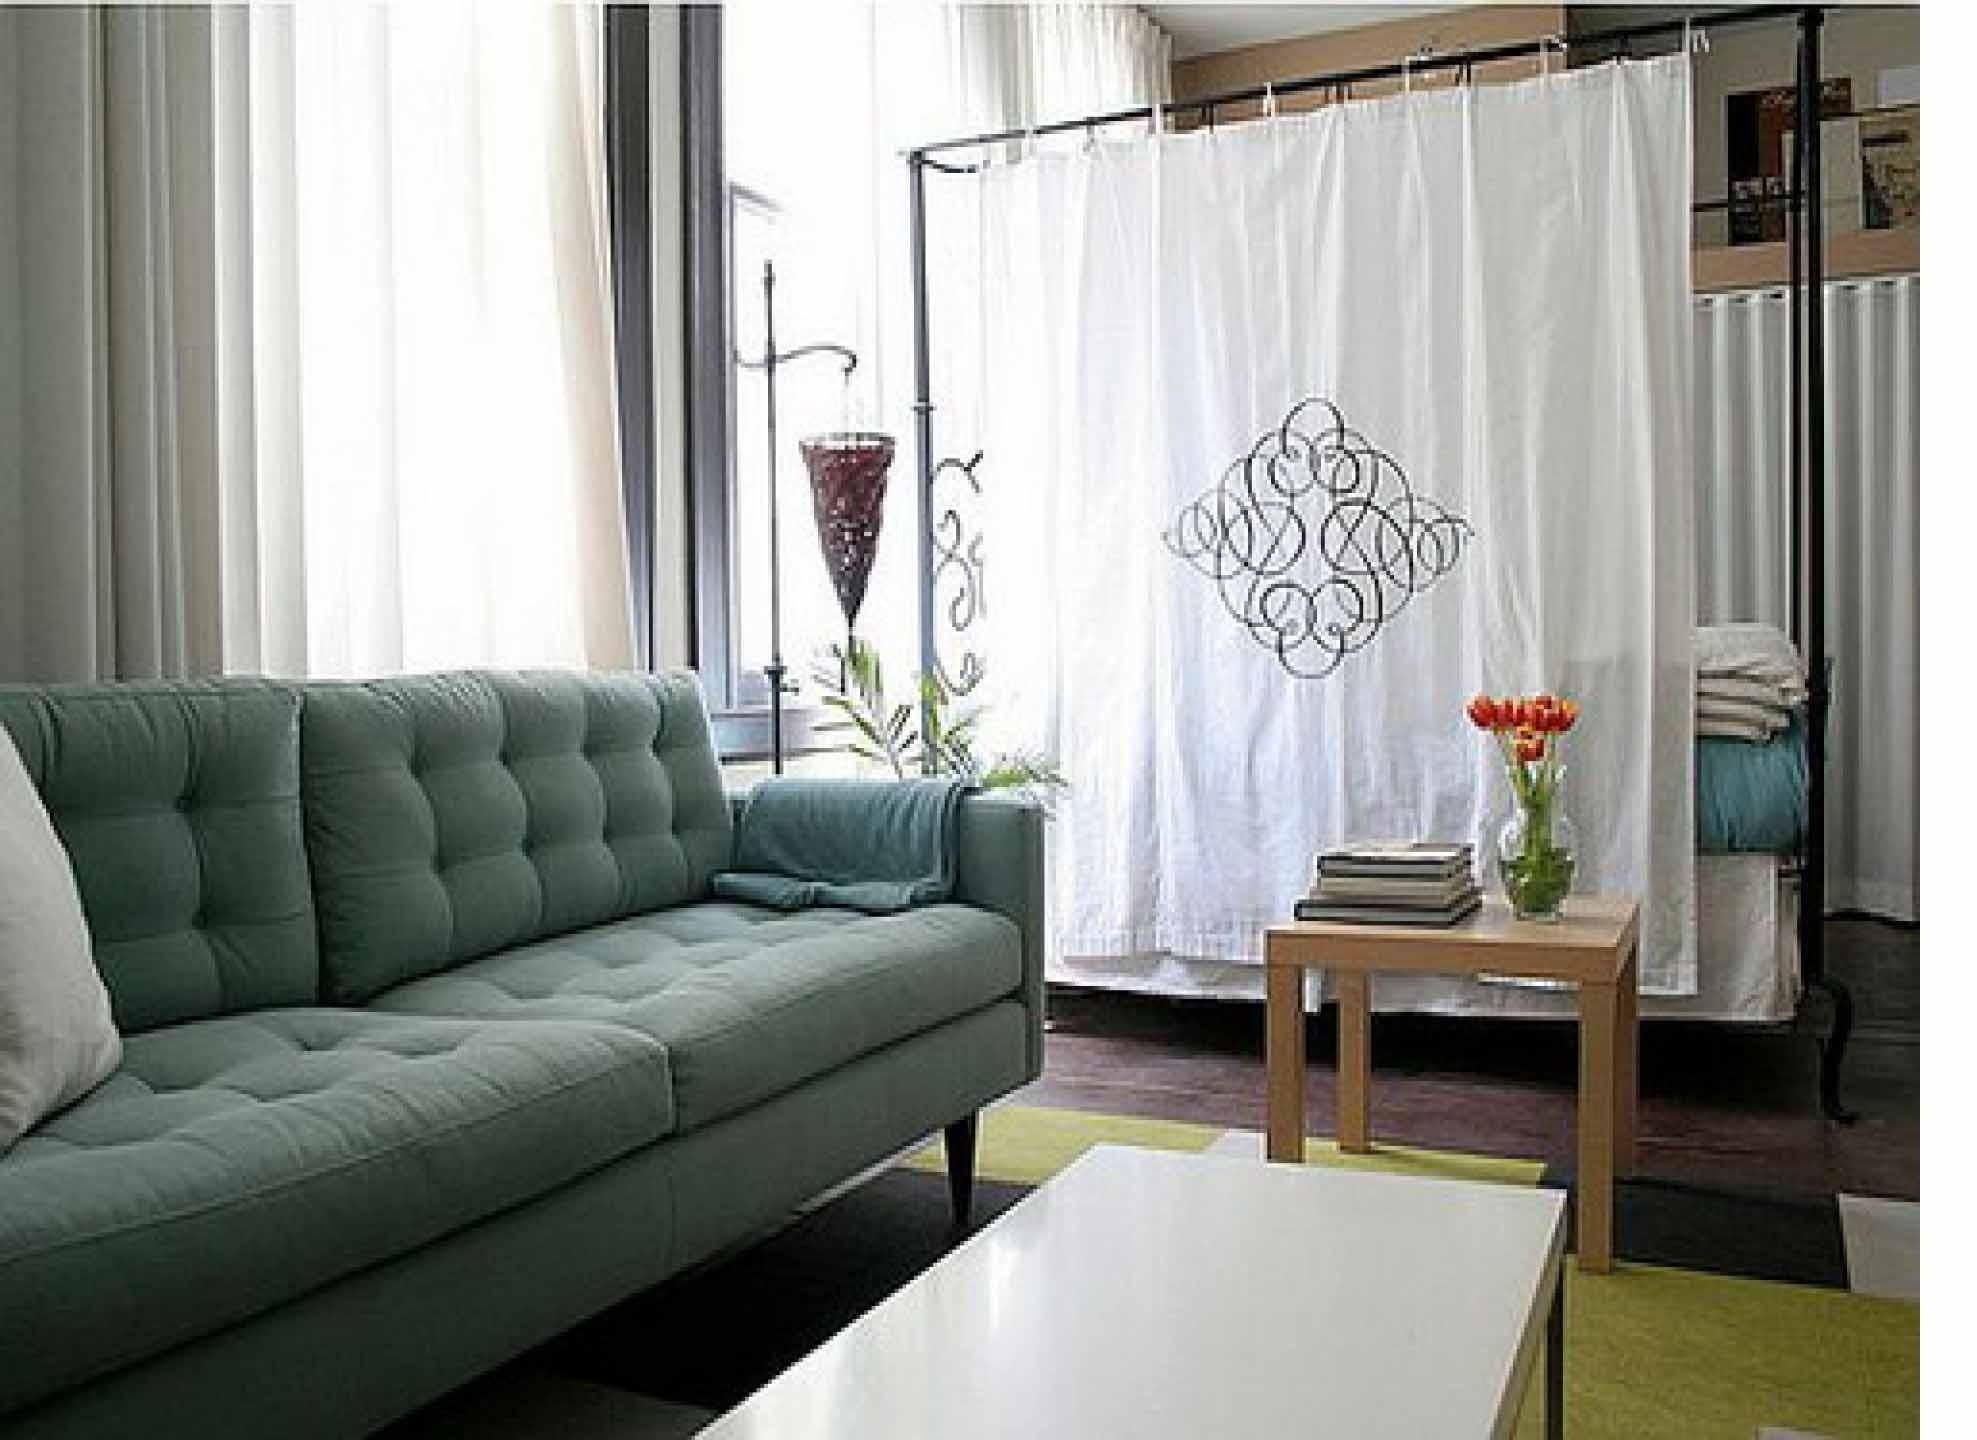 Apartment Bedroom Room Dividers Studio Home Interior